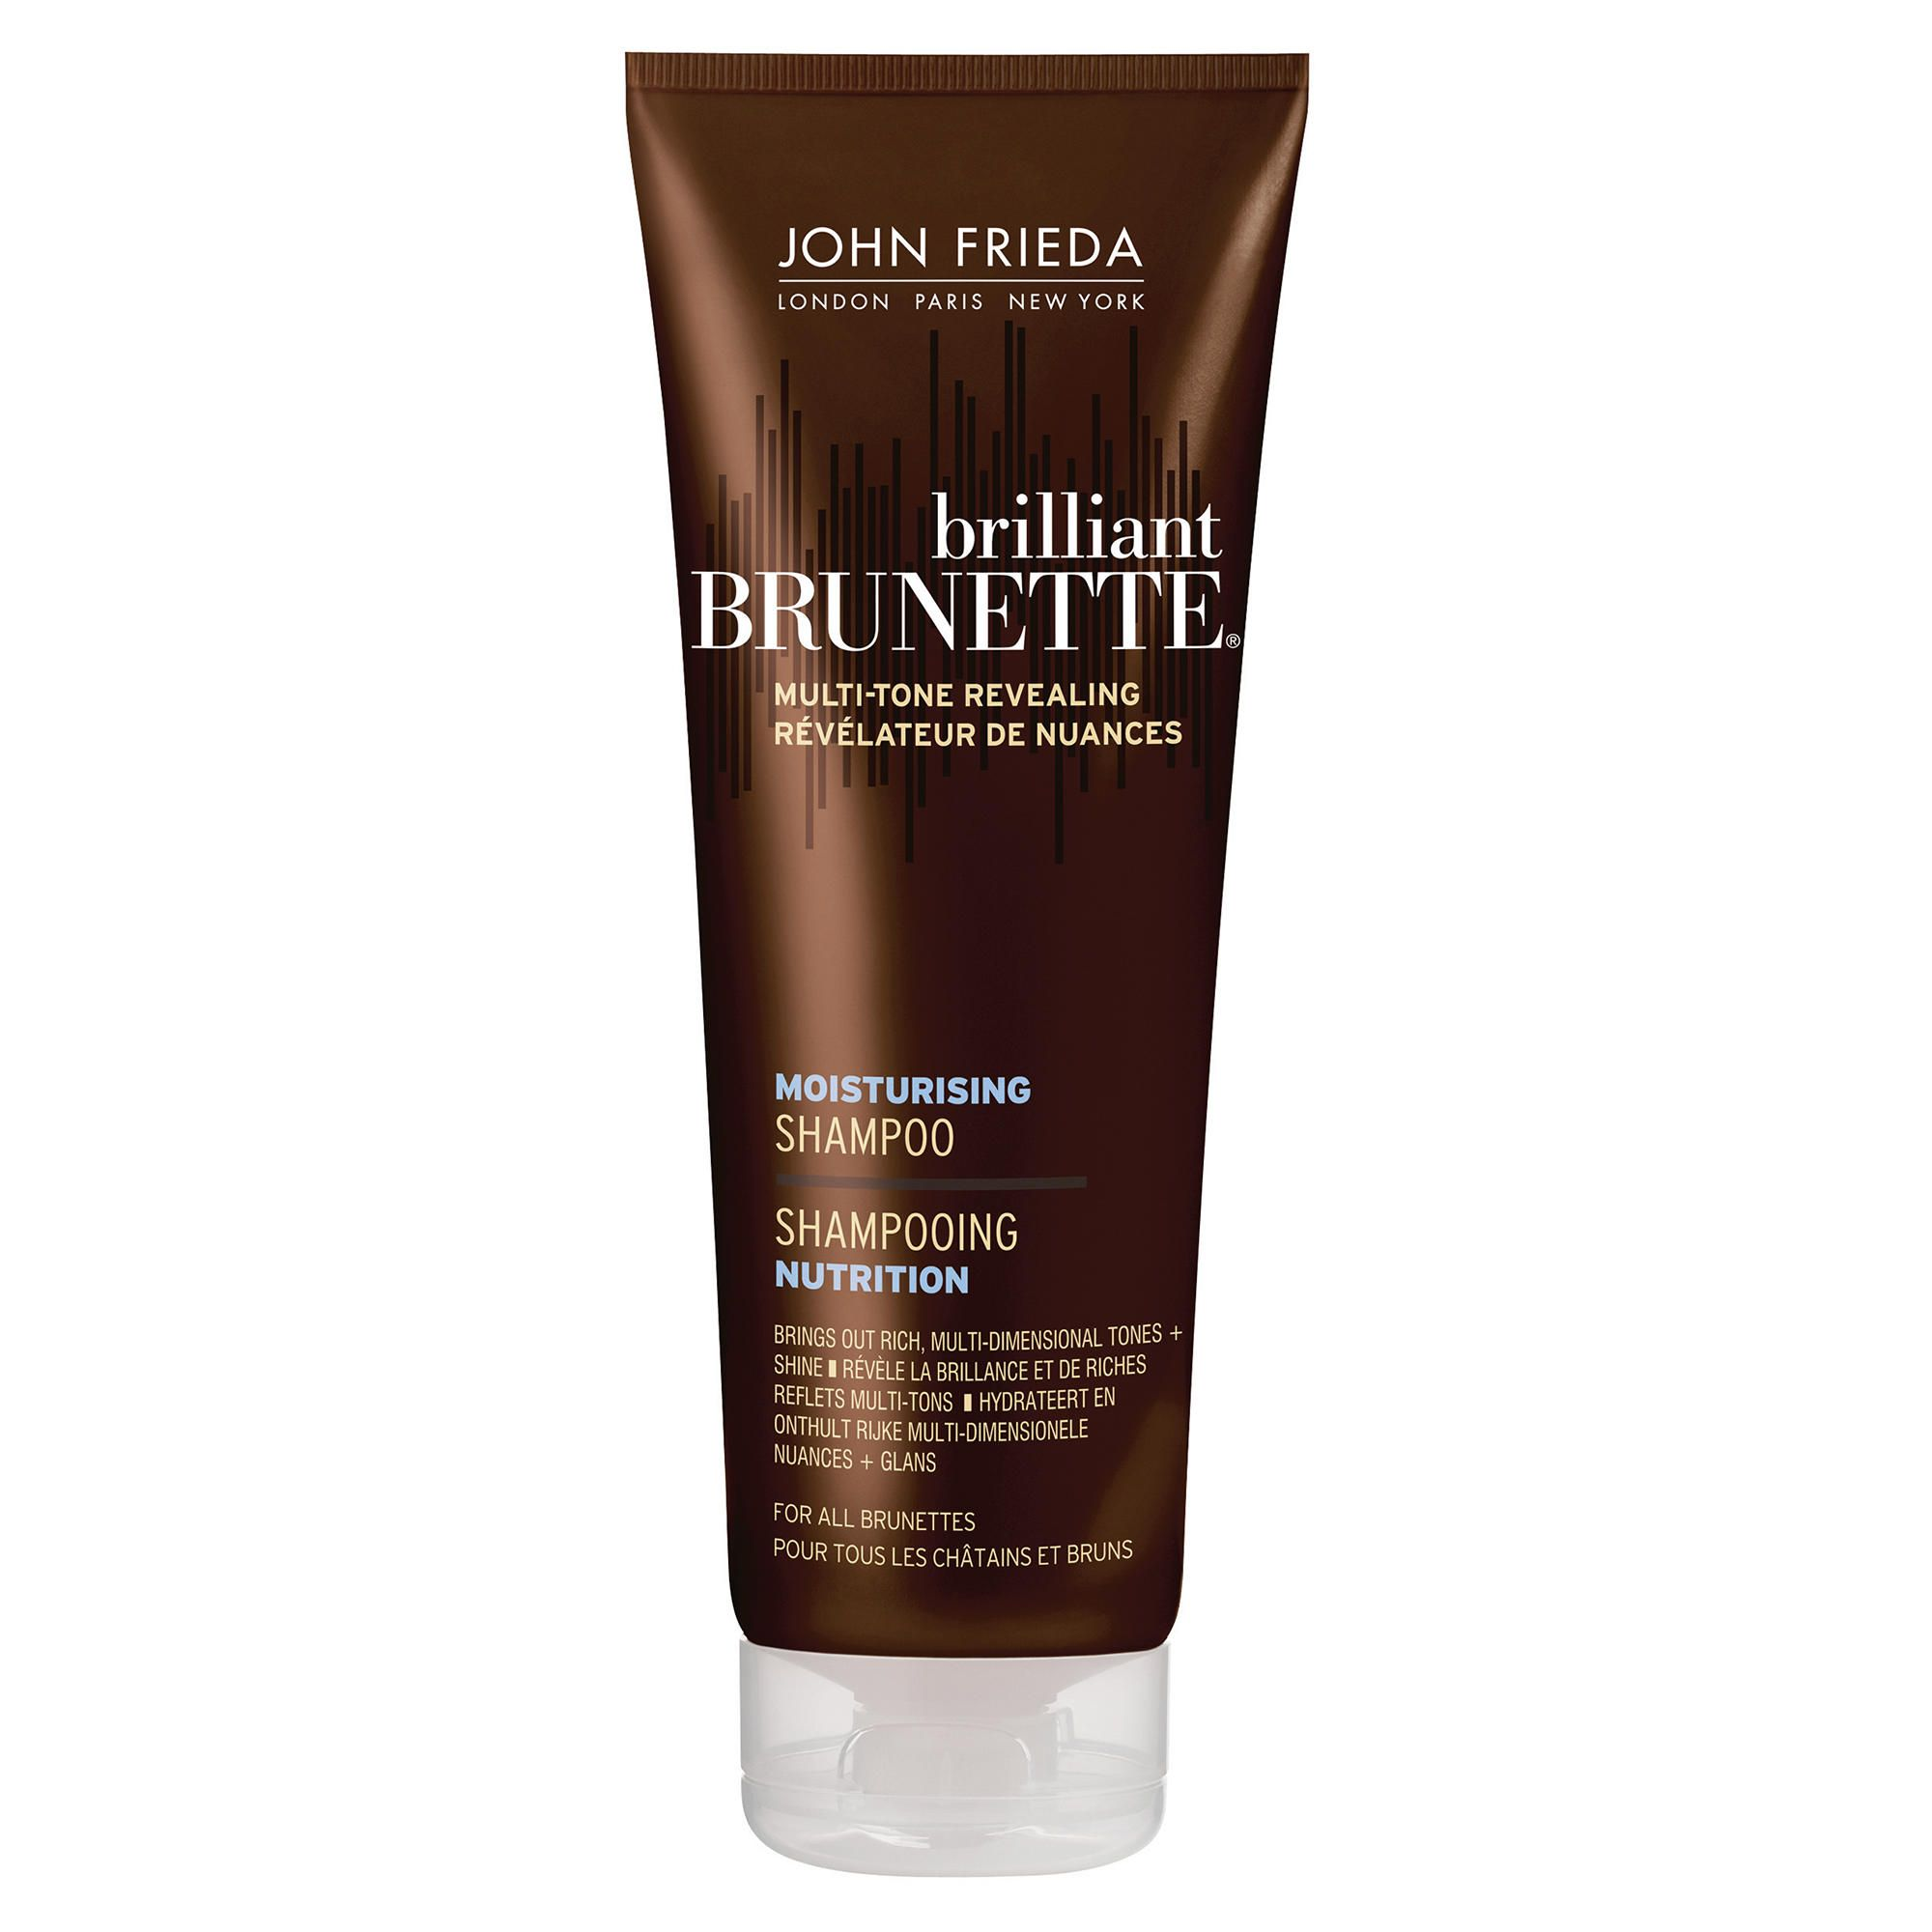 John Frieda Brilliant Brunette Moisturising Shampoo for All Brunettes Shades 250ml